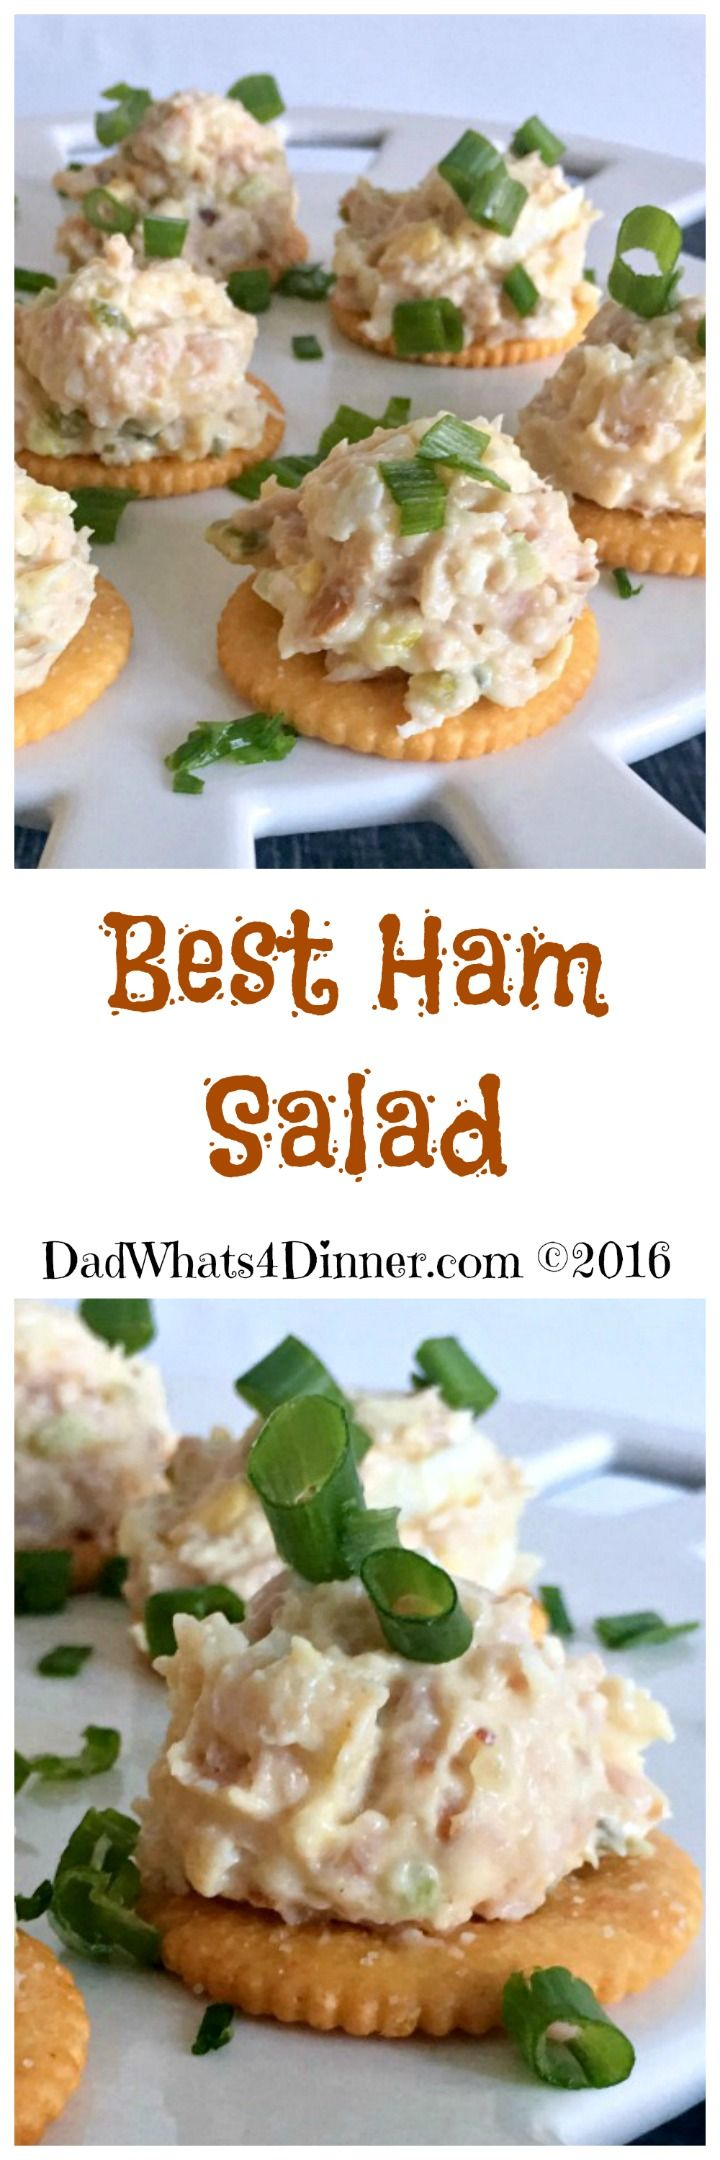 My Best Ham Salad is the perfect recipe to use up that leftover holiday ham. Creamy and smooth goes great on cracker or a sandwich! via @dadwhats4dinner